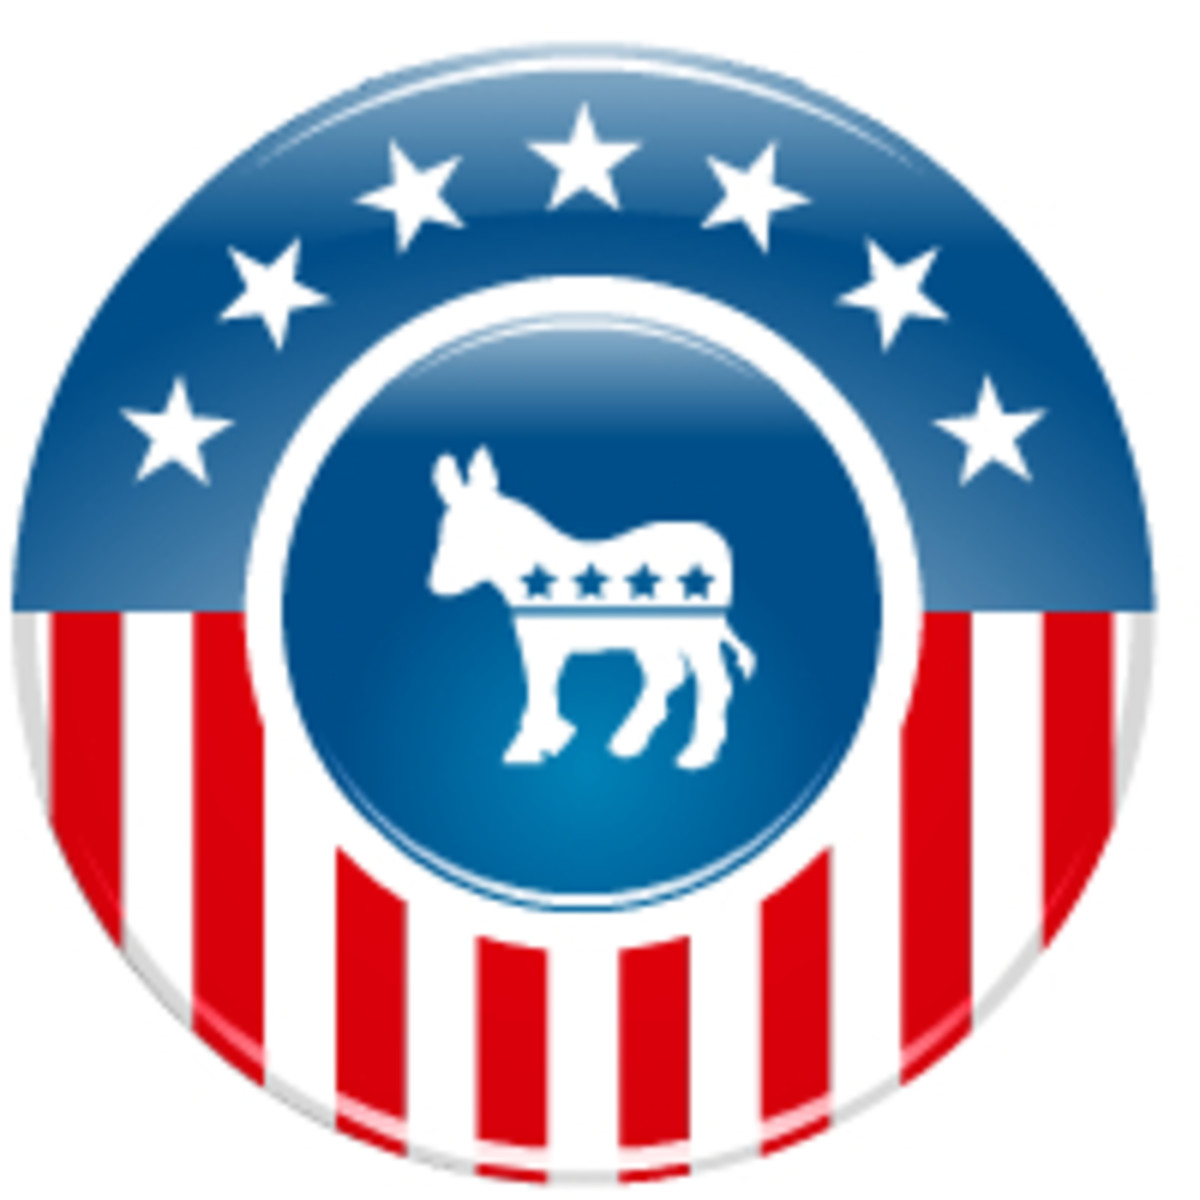 Election clip art: Democratic donkey